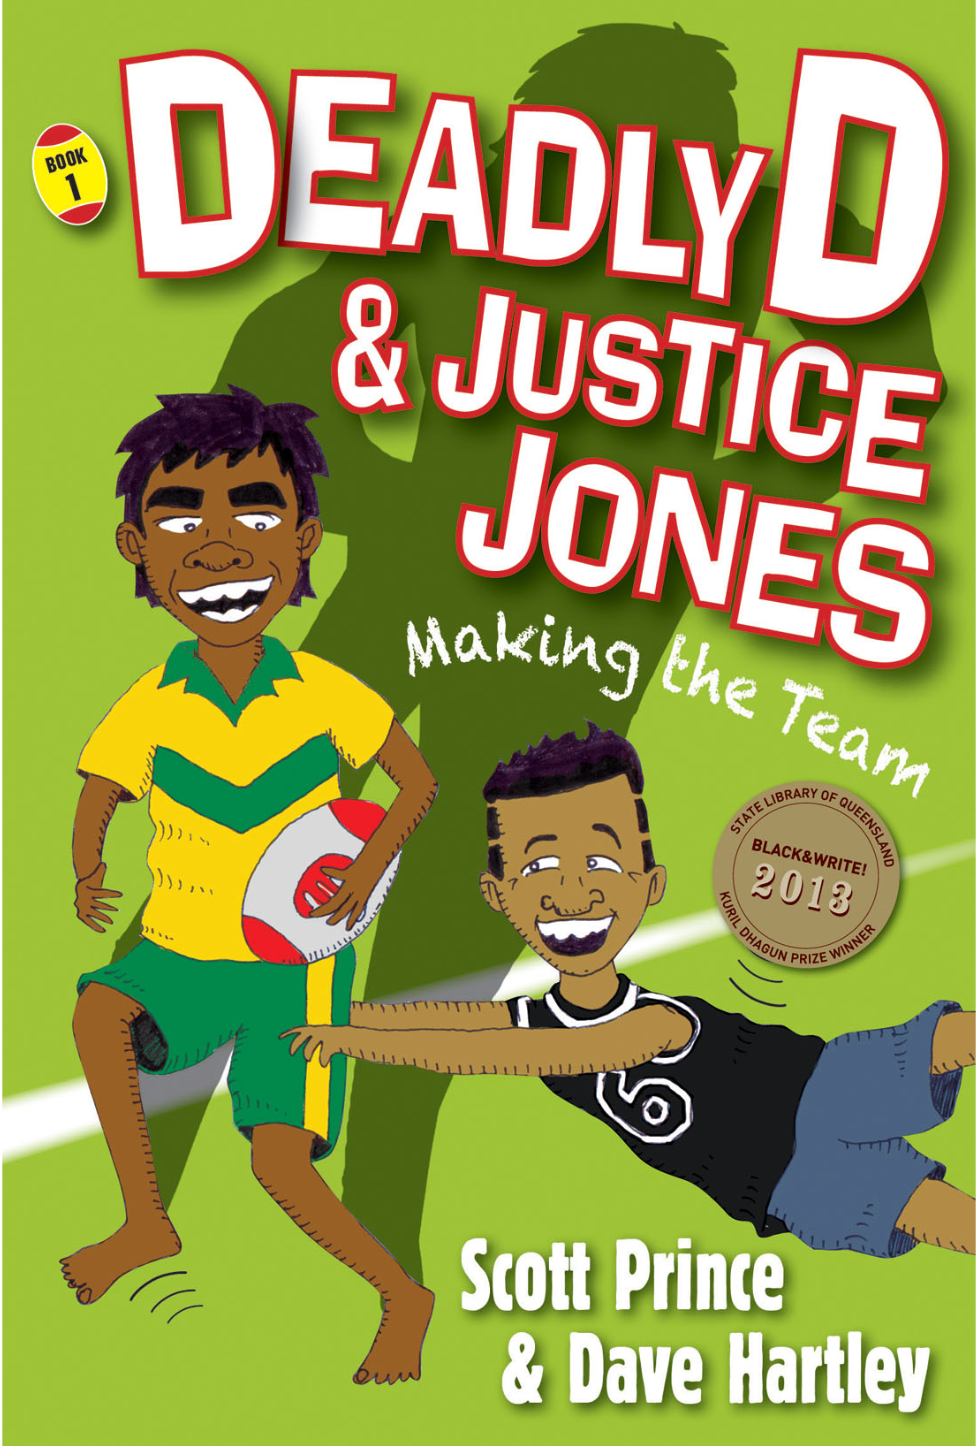 Deadly D & Justice Jones Series, just the books for kids who love NRL